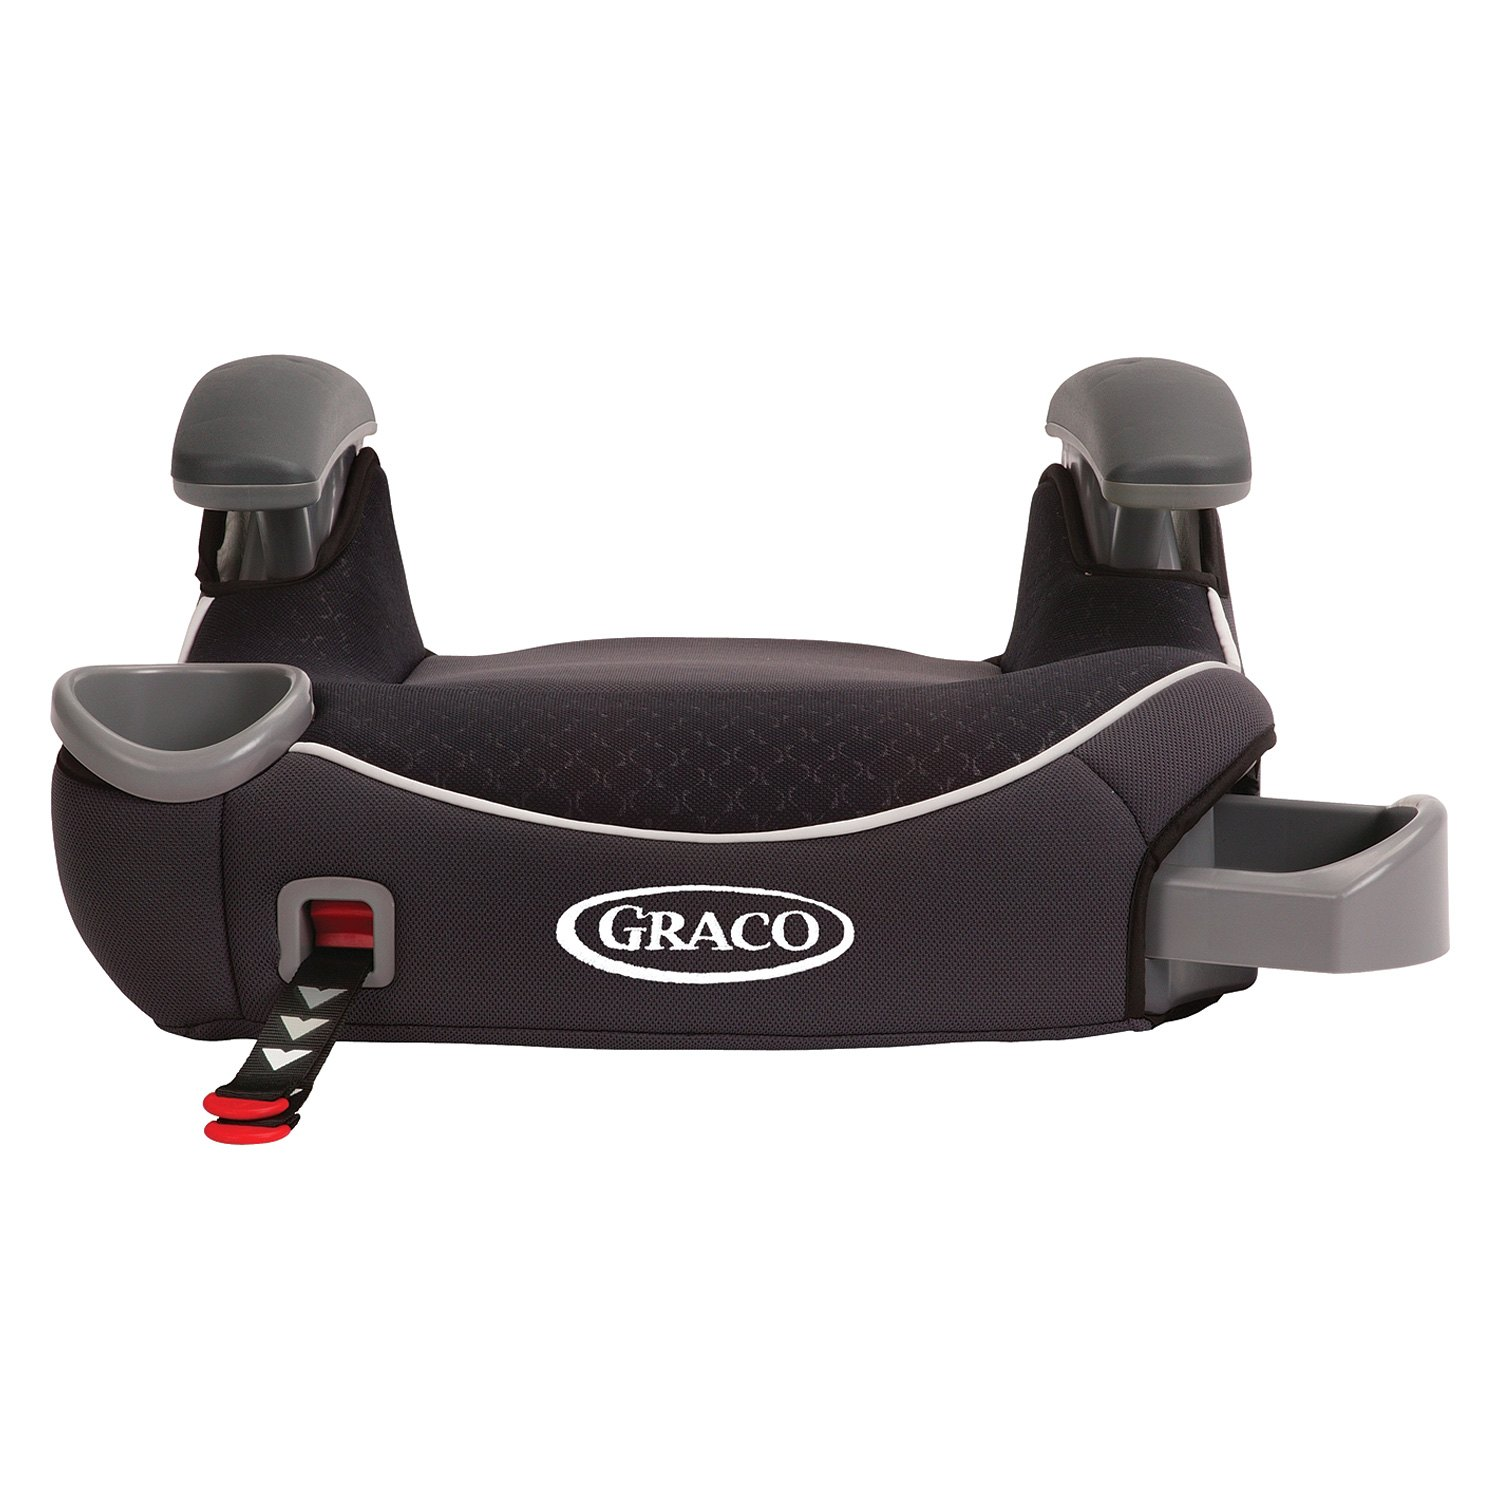 graco baby affix backless booster seat with latch system. Black Bedroom Furniture Sets. Home Design Ideas